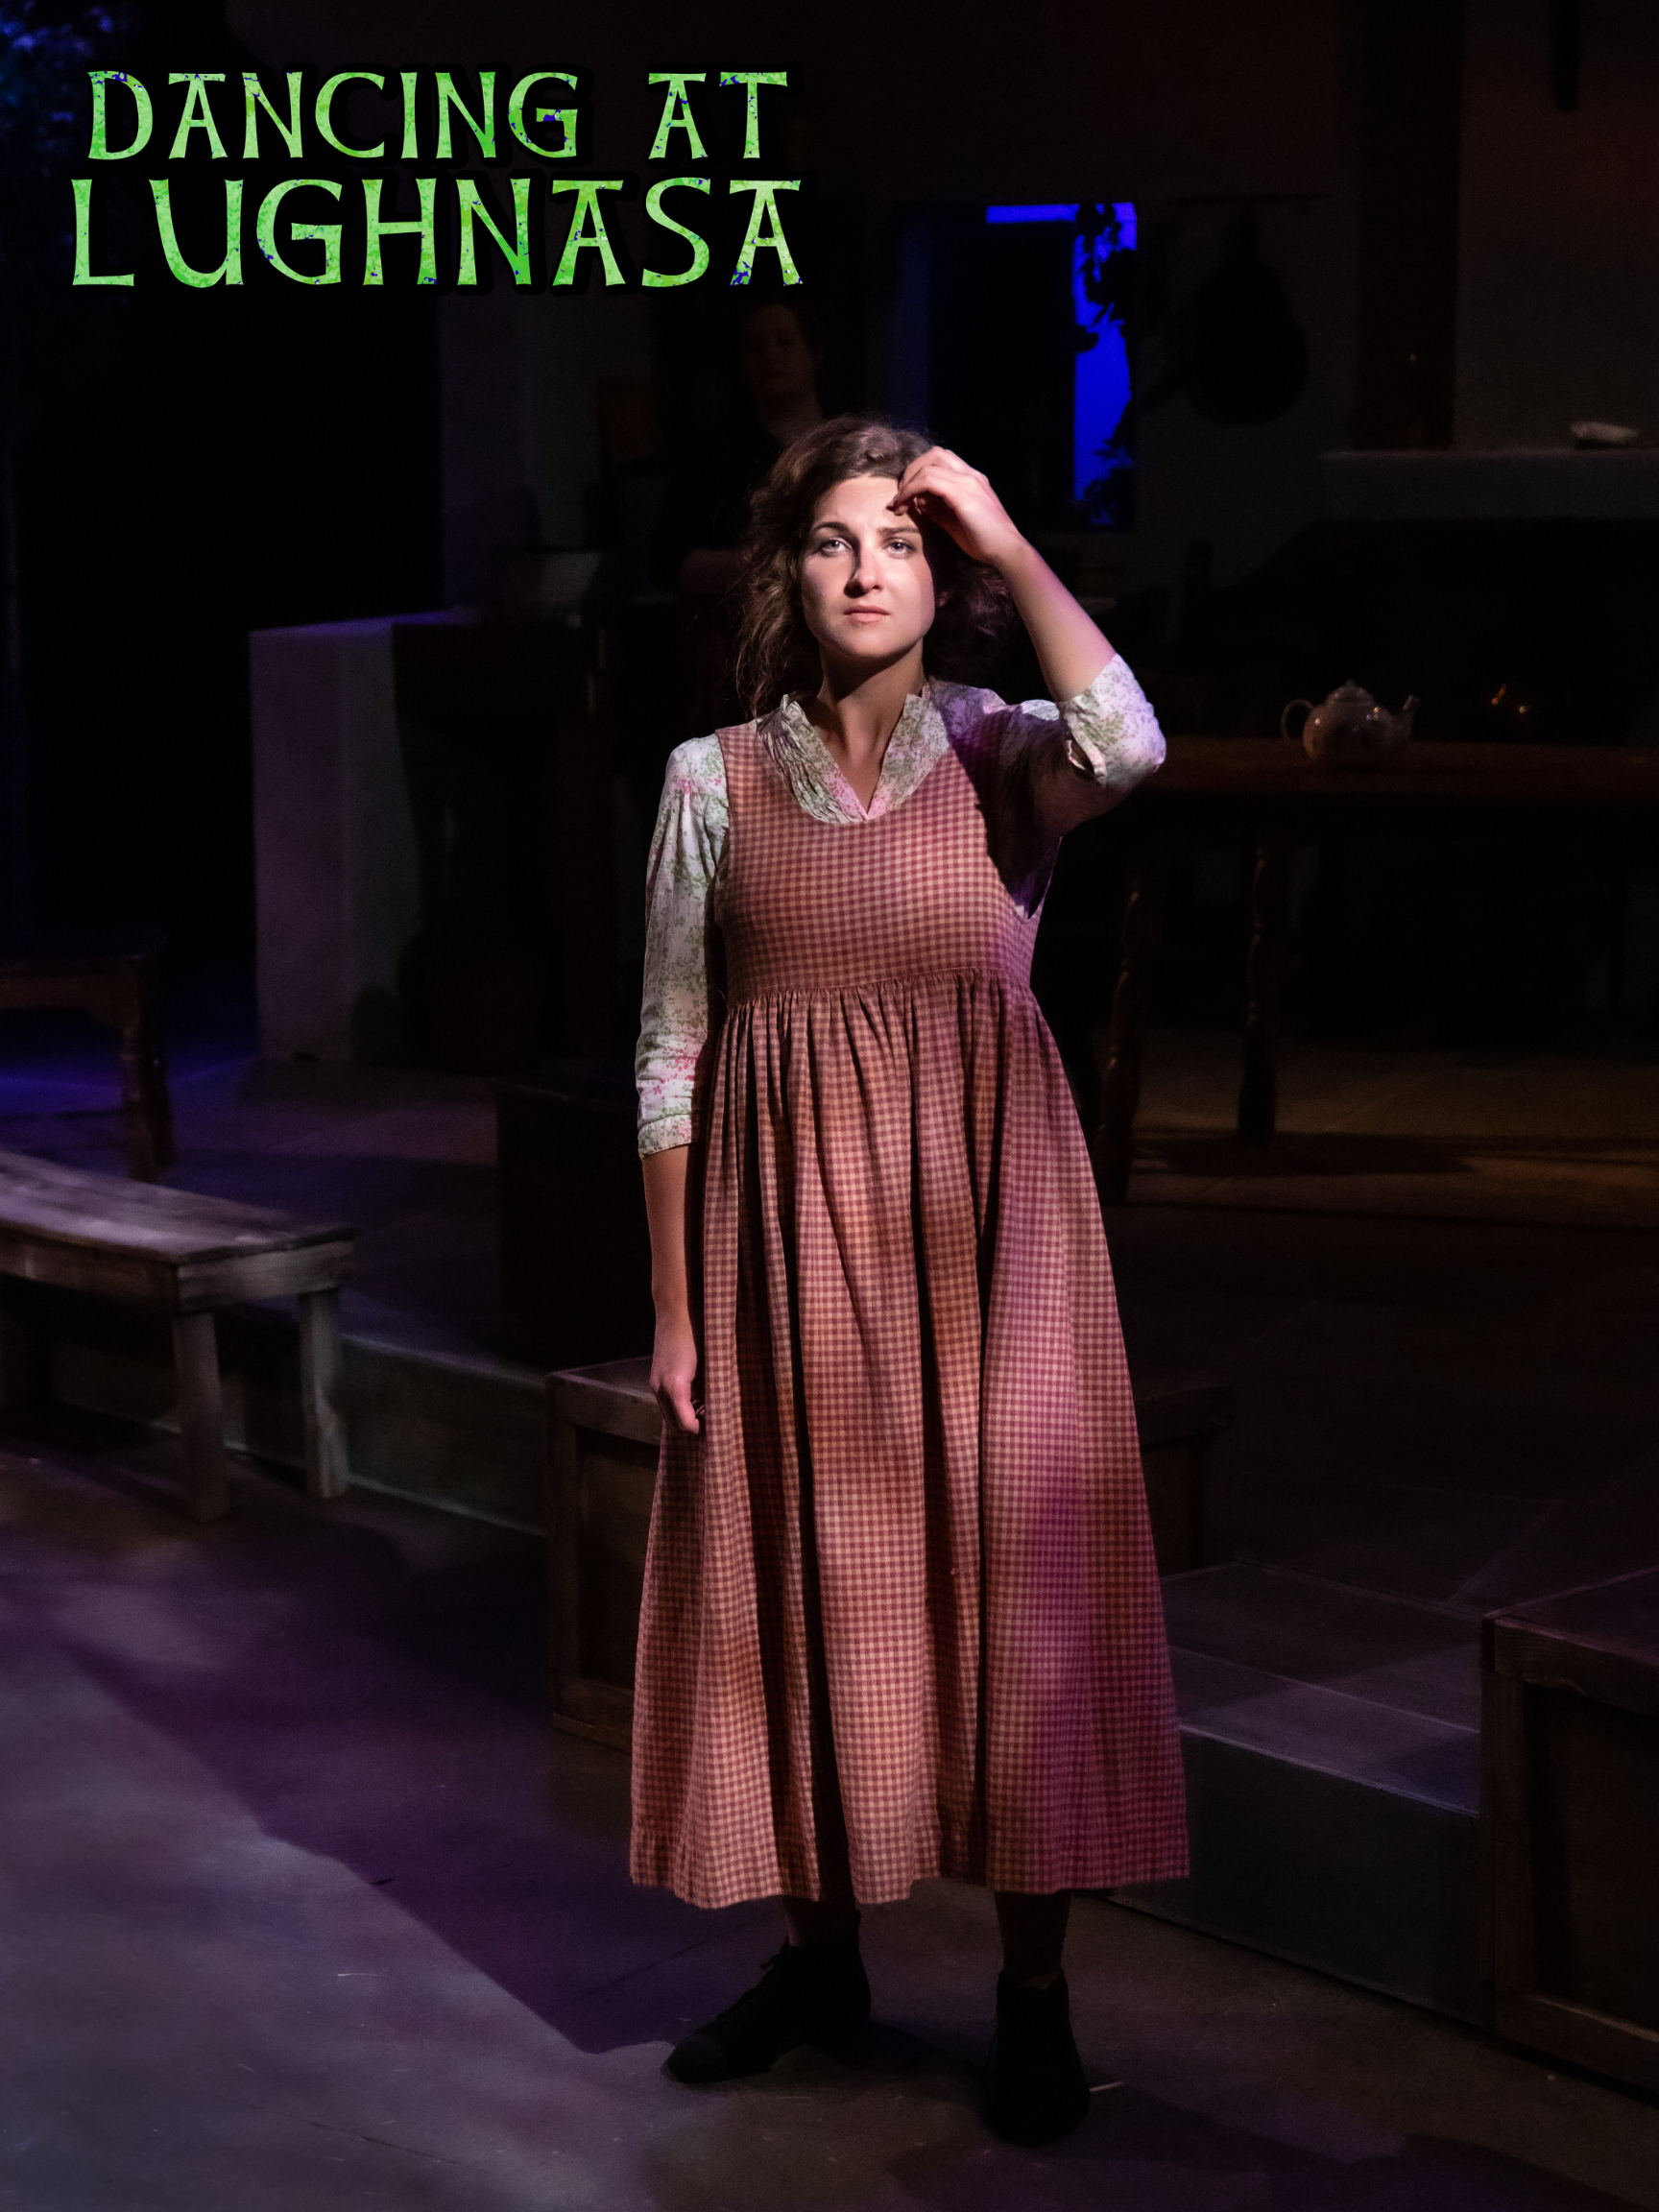 Summer Show - Caroline is cast as Chris in Dancing at Lughnasa at Open Fist Theatre Company, playing through August 31st.